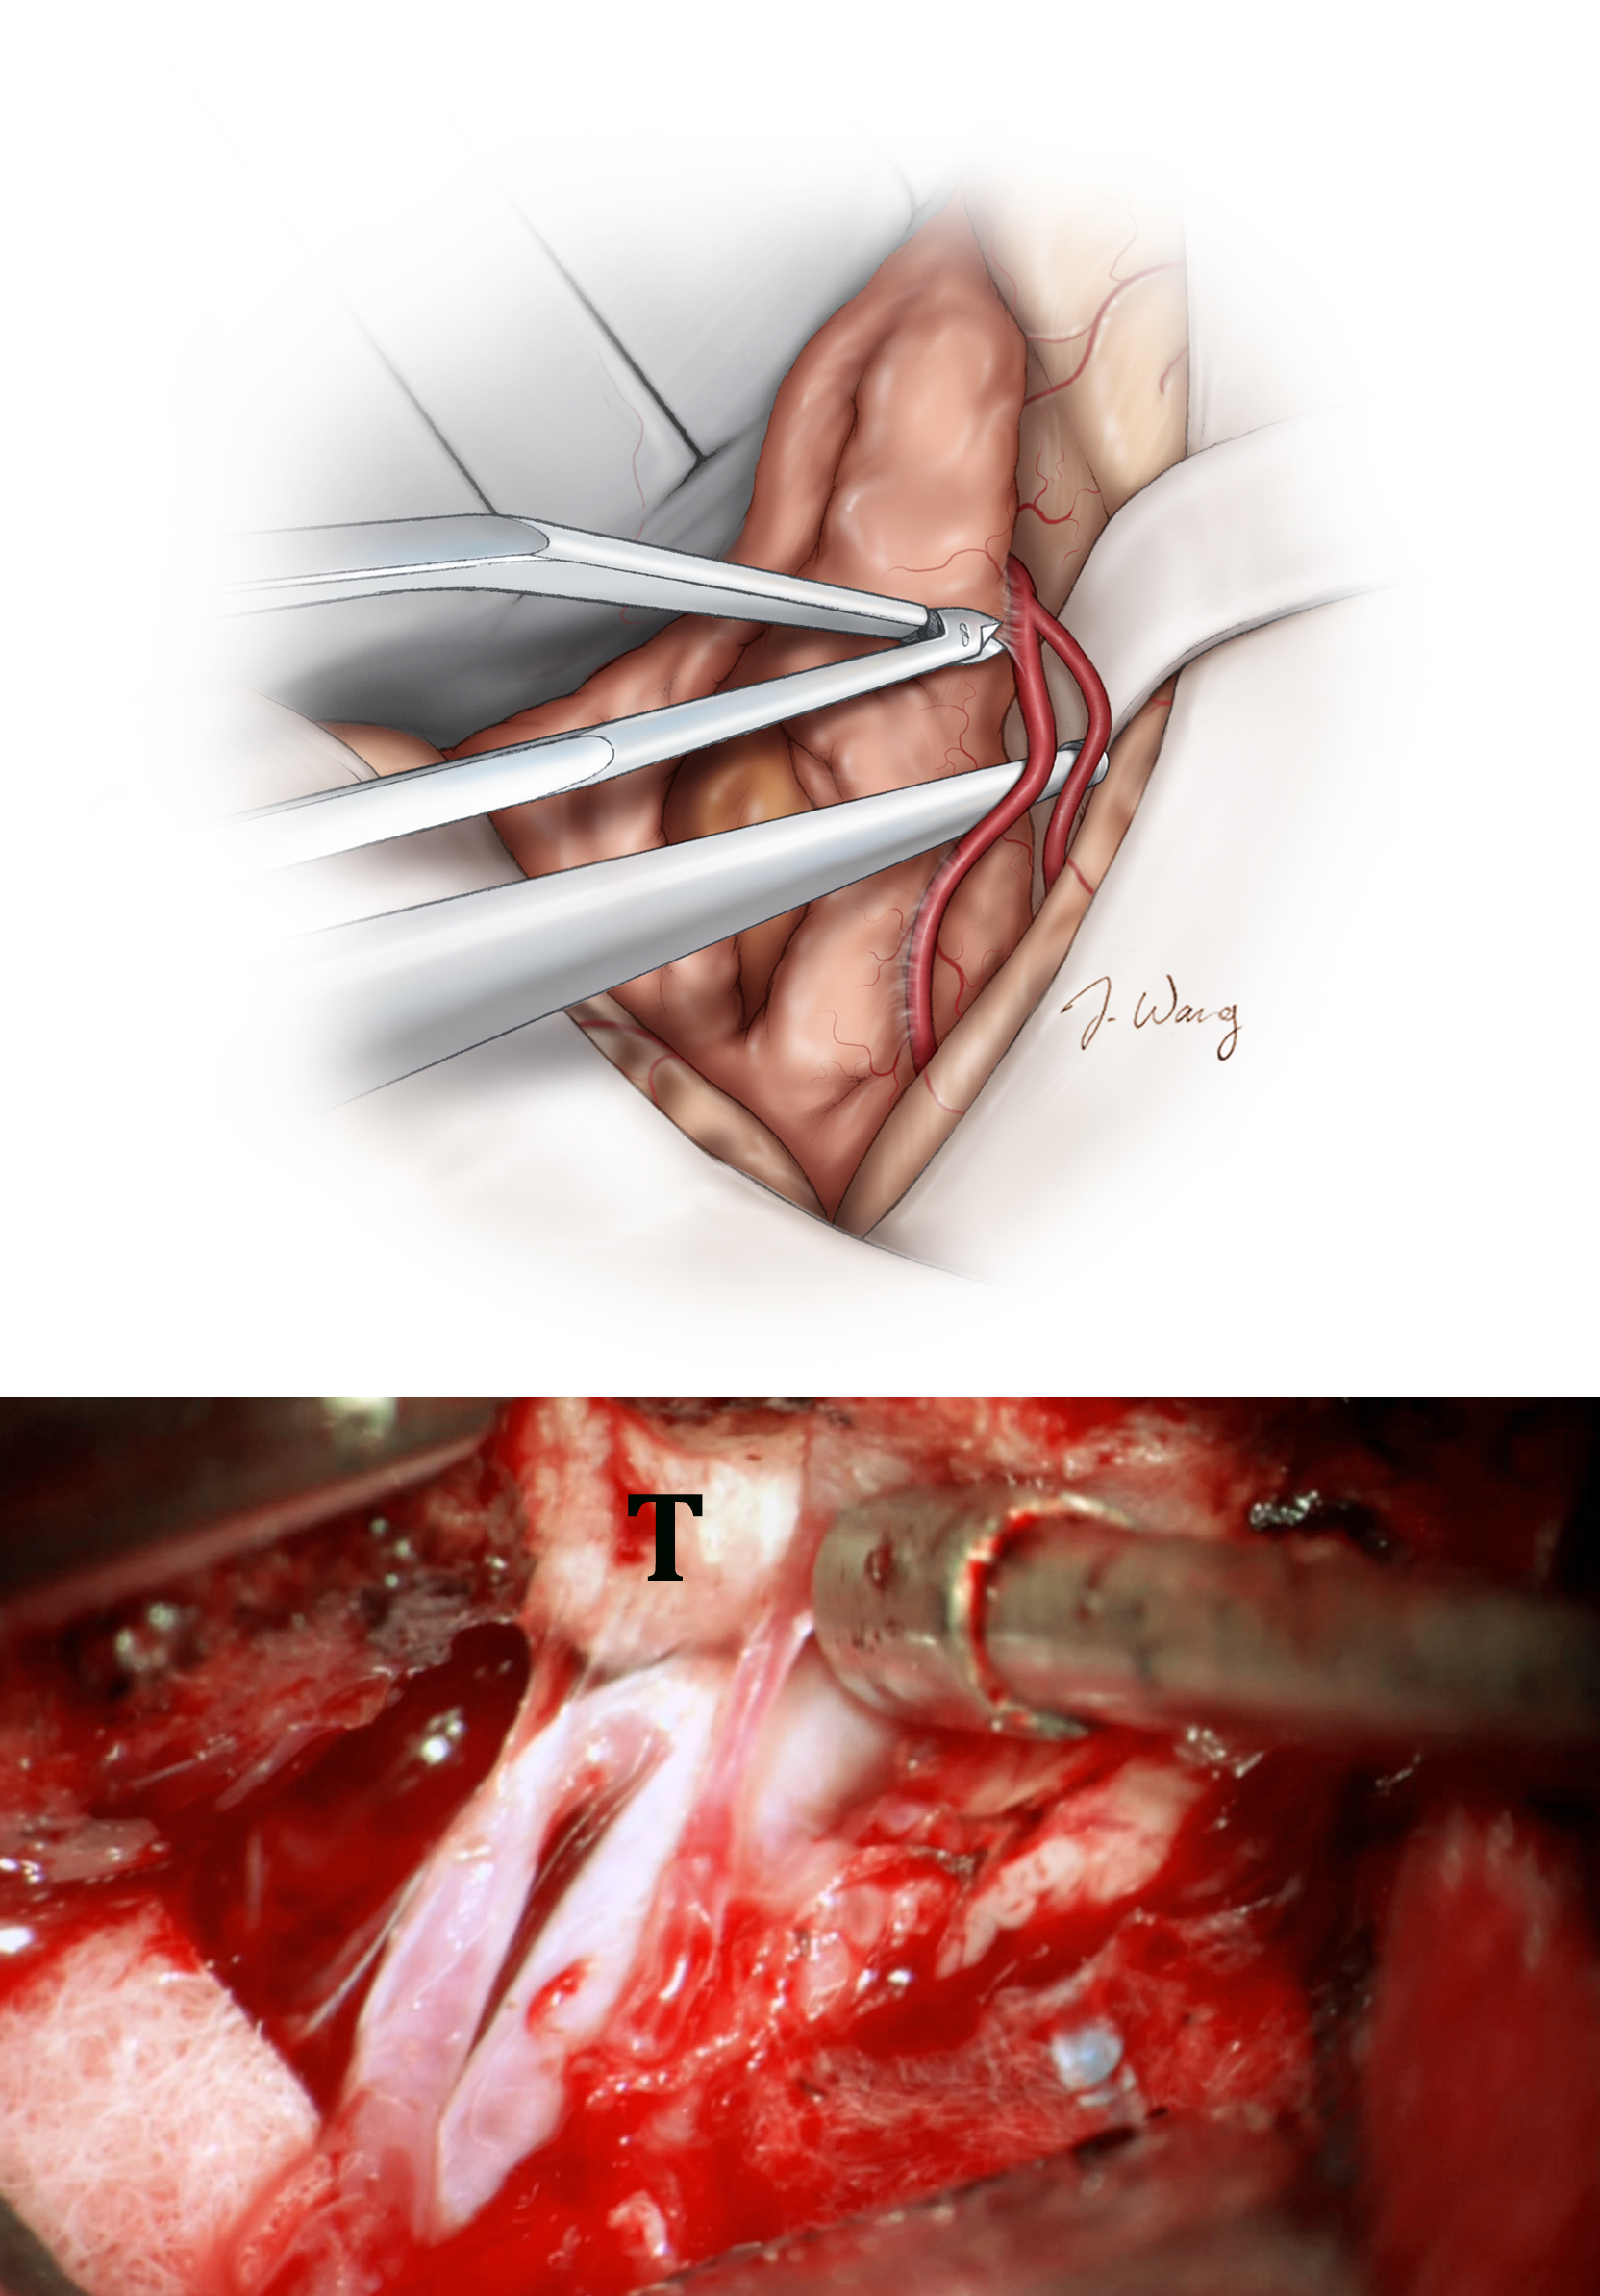 Figure 11: All MCA vessels are sharply dissected off of the tumor capsule and protected with the use of cottonoids once mobilized (upper image). Blunt dissection should be avoided when possible.  Most importantly, the feeding arteries of the tumor and the vital  en passage  vessels are clearly identified before their fate is decided.  Pieces of papaverine-soaked Gelfoam are used to periodically bathe small  en passage  vessels for relief of their vasospasm. Higher magnification intraoperative view demonstrates dissection of the M2 branches away from the tumor (T)(lower image).